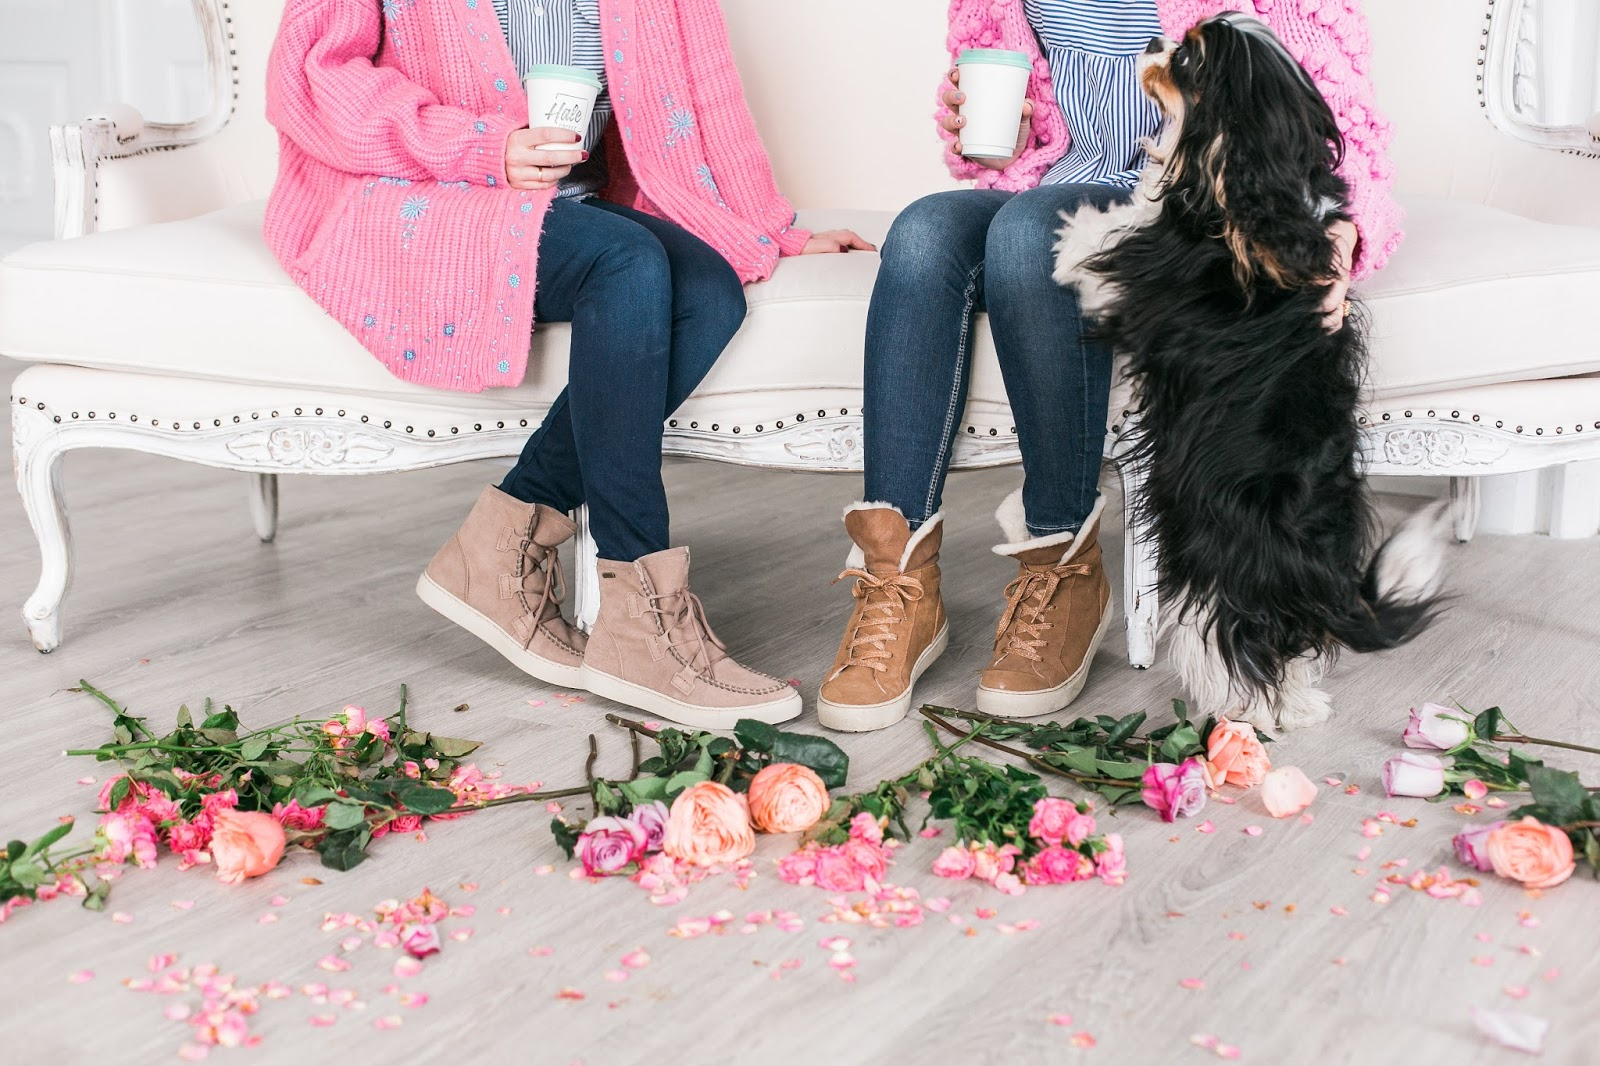 Bijuleni | 2 Transitional Boots You Need For Spring | Sisters wearing matching pink cozy sweaters, skinny jeans and striped shirt and Cavalier King Charles tri colour puppy